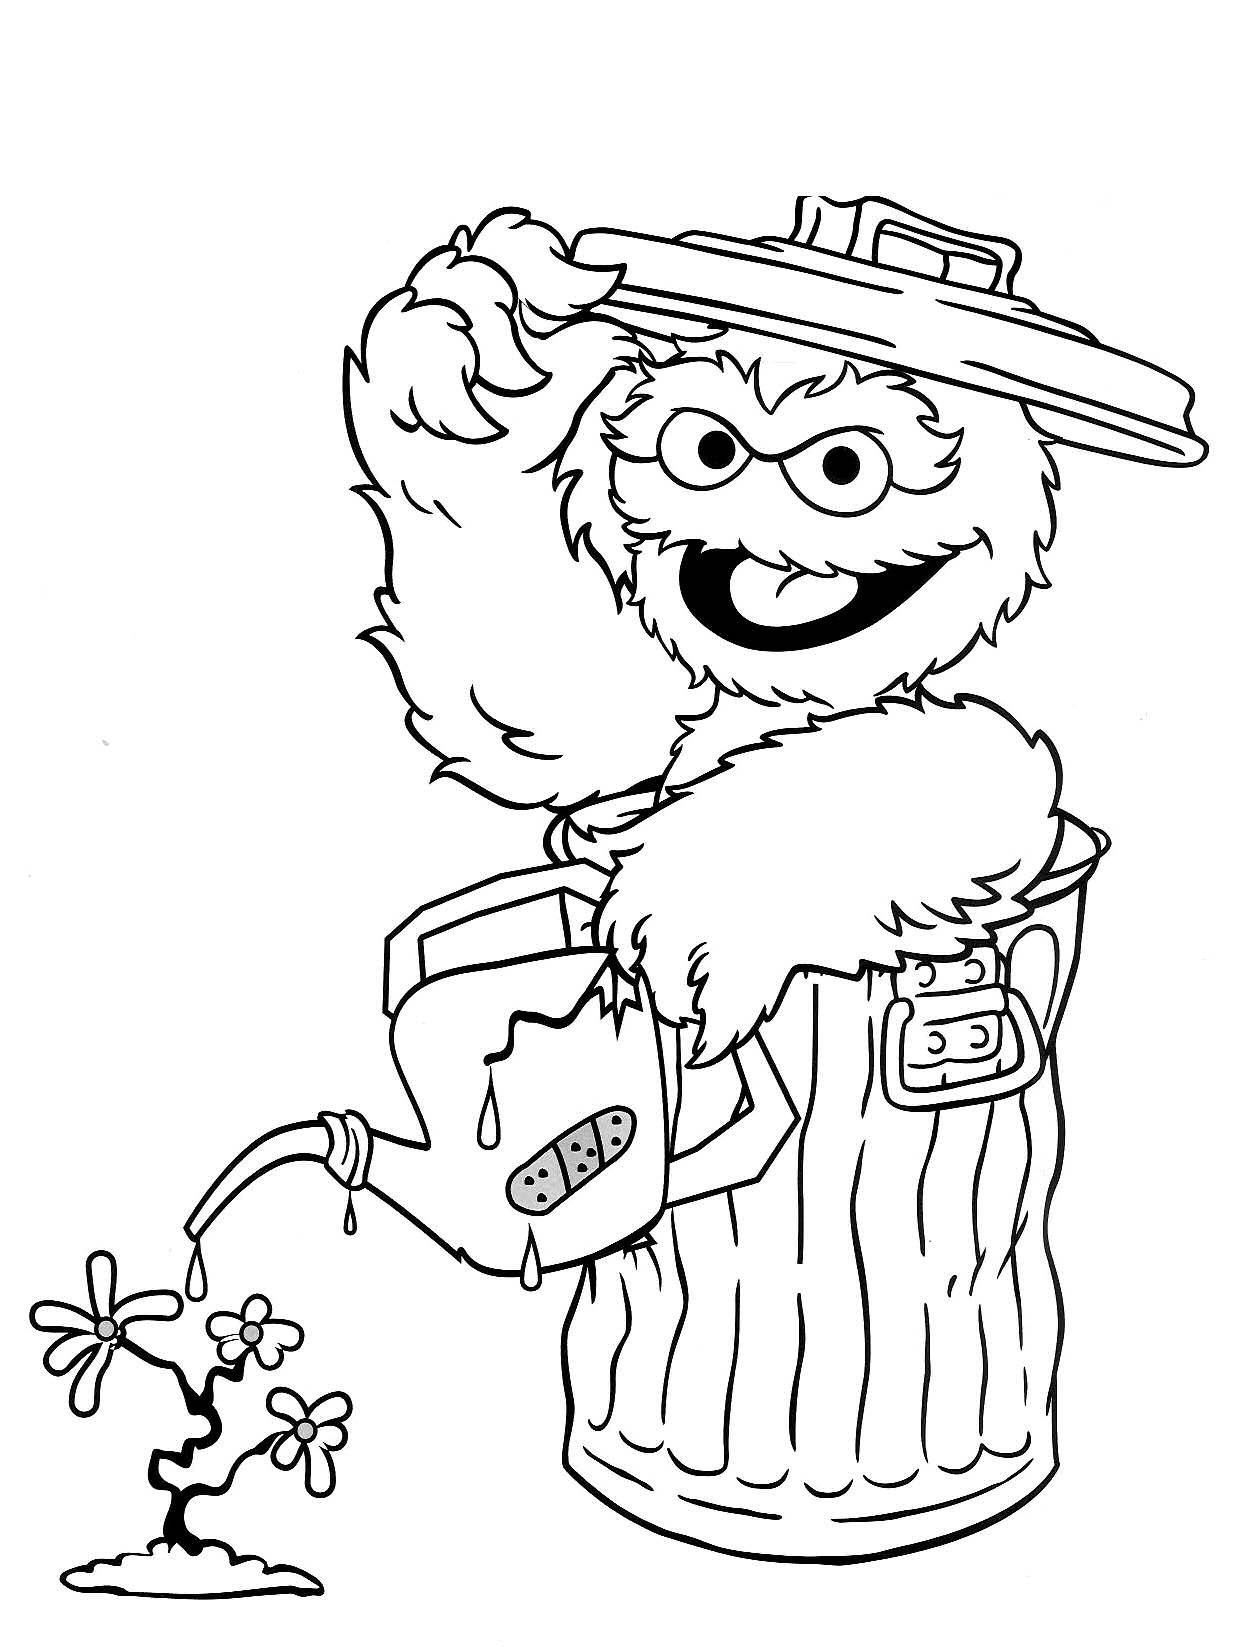 seasme street coloring pages - photo#24